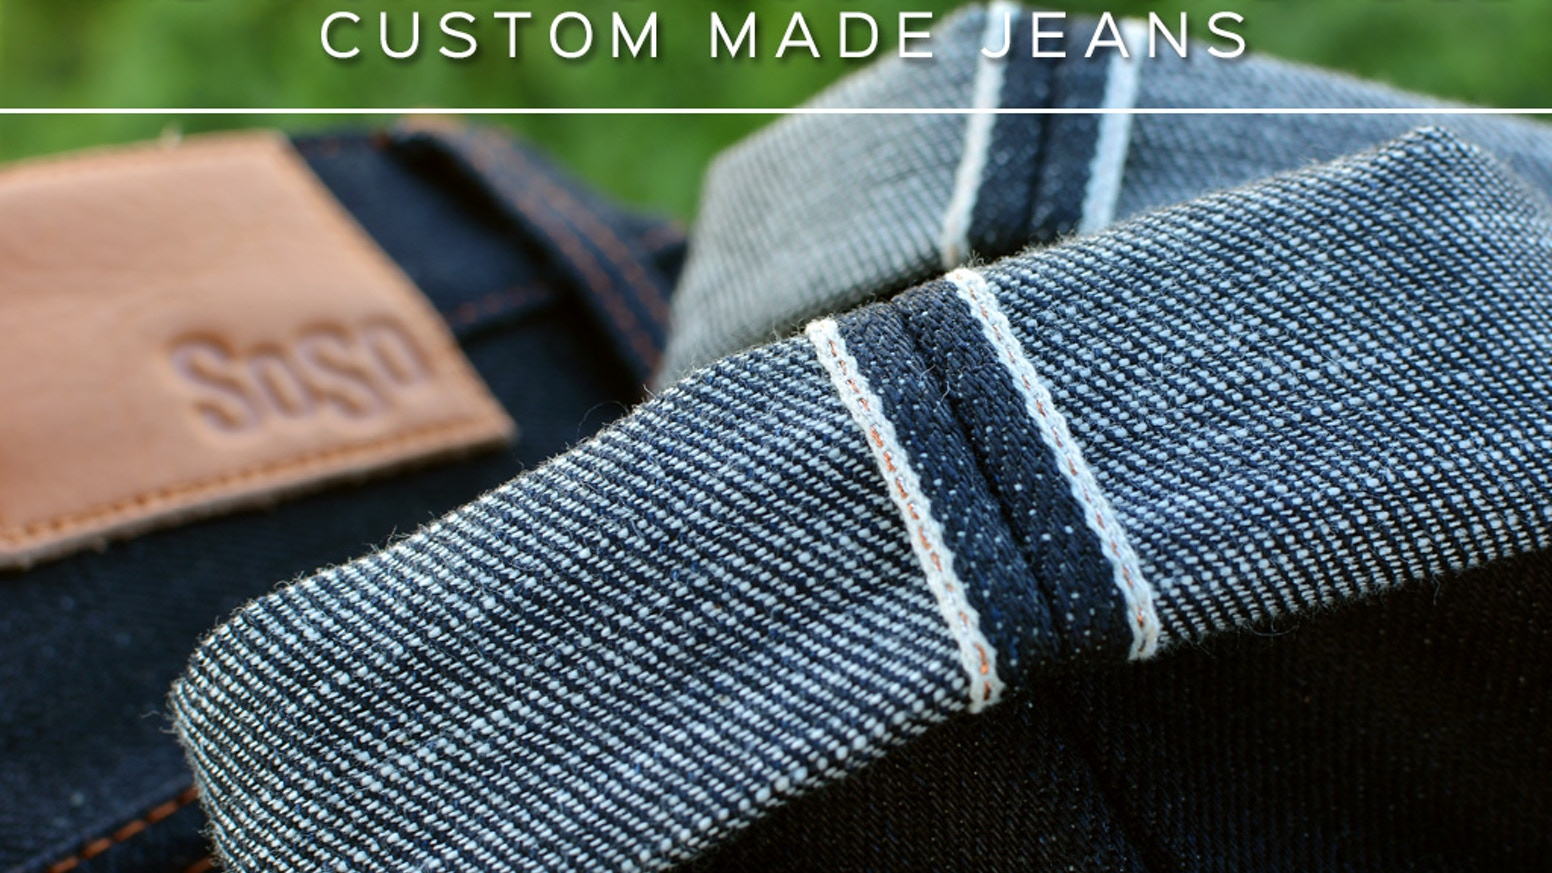 75ea691849c We re here to give you freedom. A freedom that most brands do not offer. We  are here to give you Custom Made Jeans.